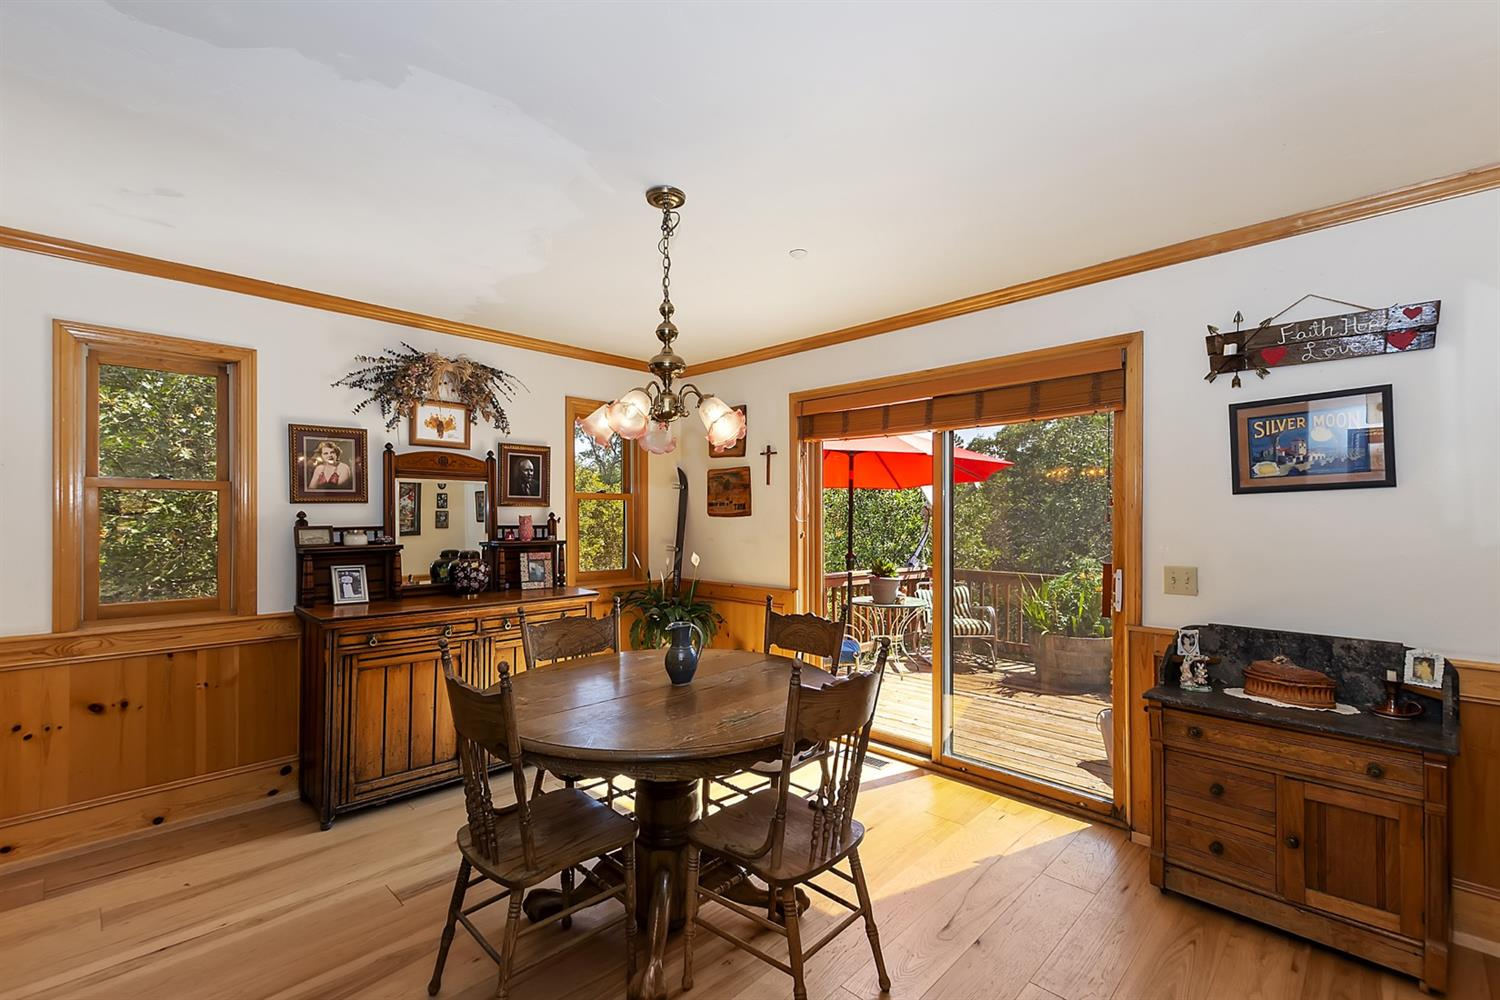 1601 Grass Valley Road Property Photo 10